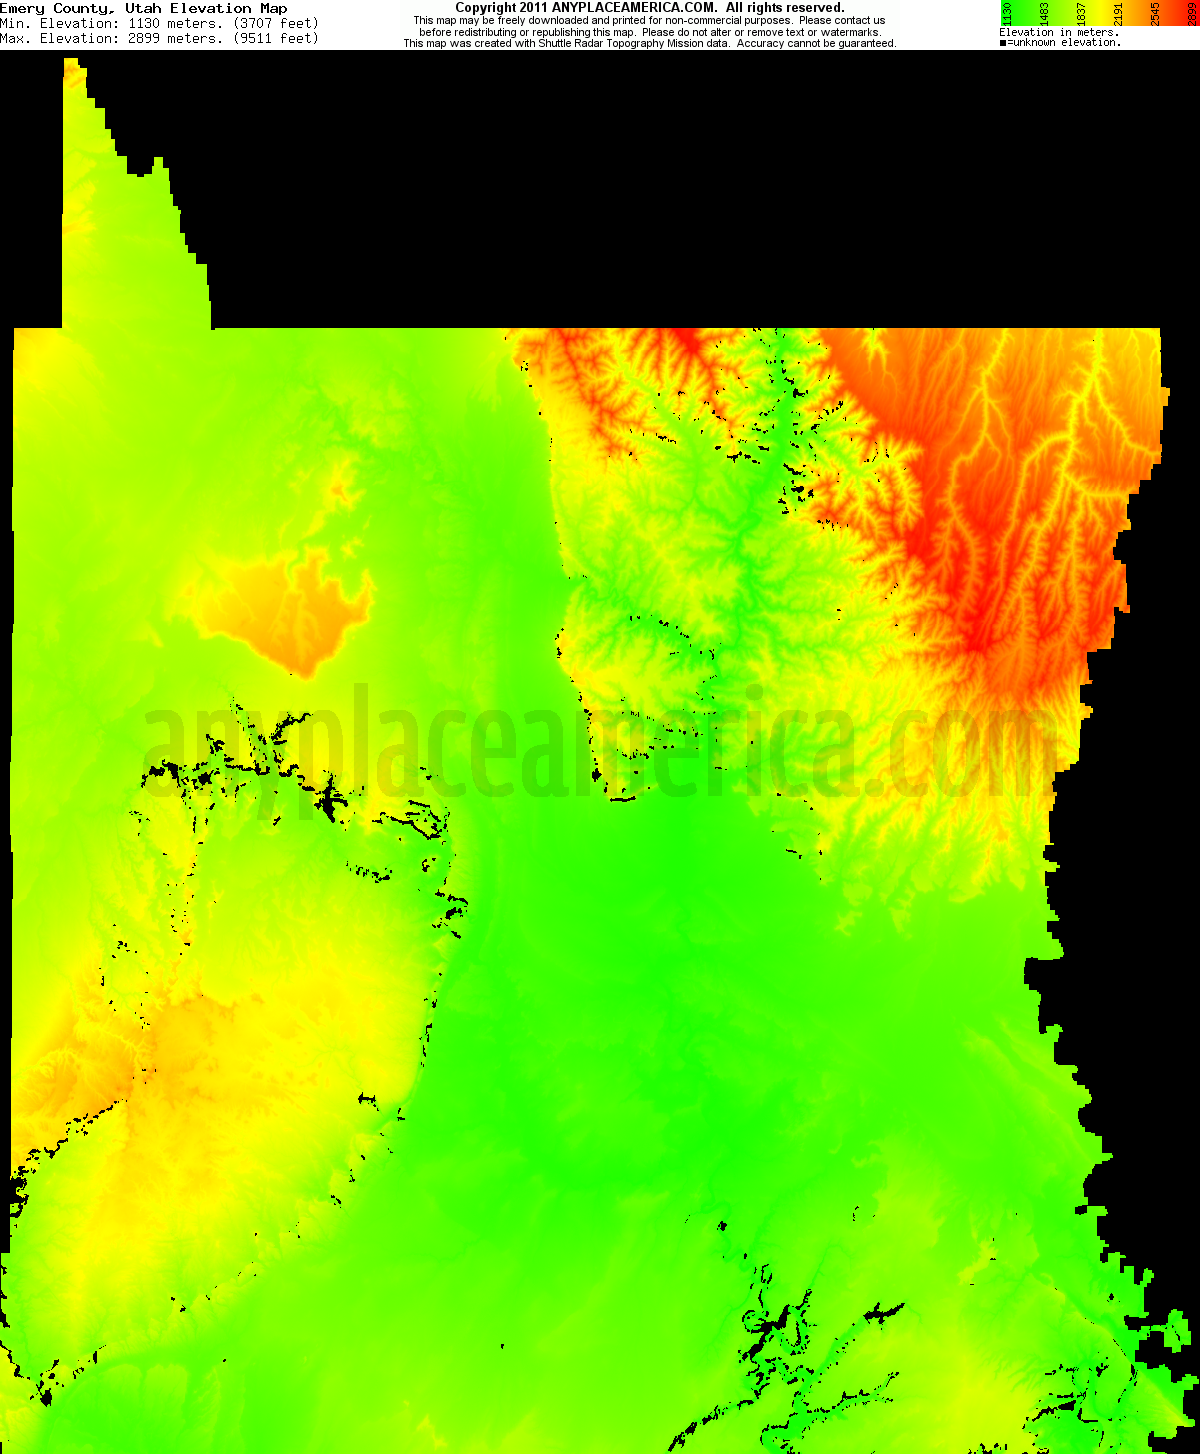 Download Emery County Elevation Map